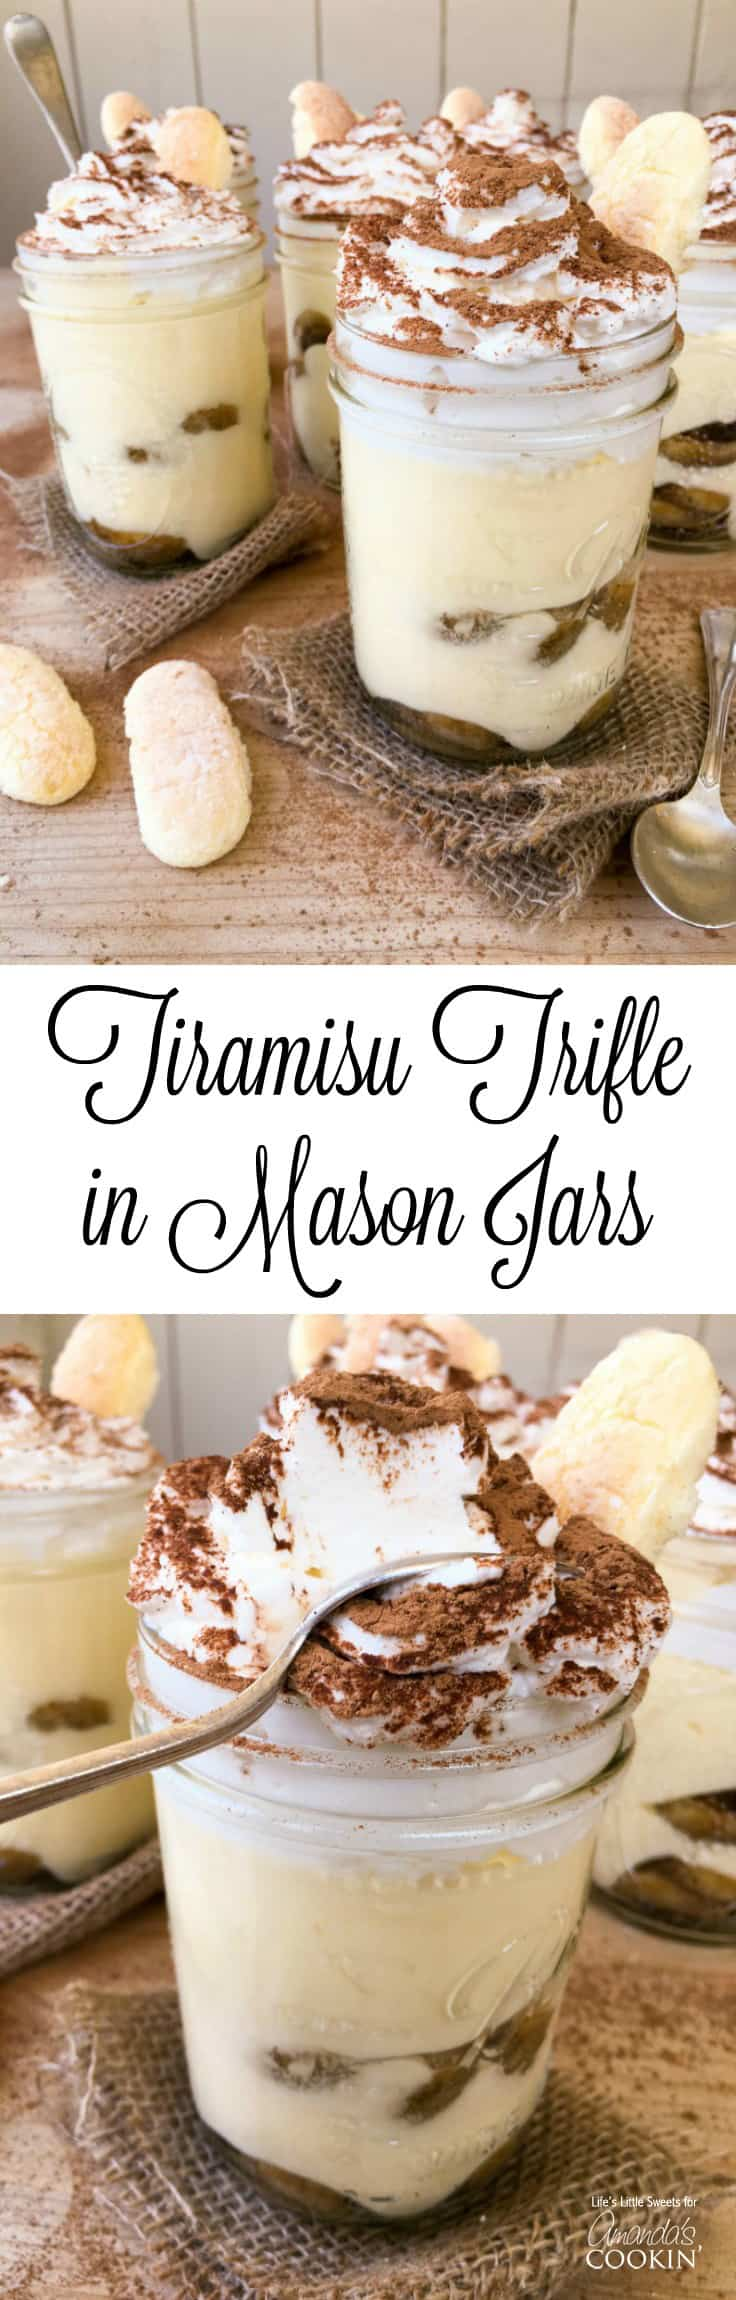 This Tiramisu Trifle in Mason Jars is a new take the classic tiramisu dessert. There is plenty to go around as this recipe makes 6 pint-sized mason jars filled with delicious tiramisu dessert, yet only requires 10 ingredients. With 2 layers of delicious, espresso-soaked ladyfingers, rich tiramisu cream and lofty whipped cream dusted with cocoa, Tiramisu Trifle in Mason Jars is going to be your new most-requested family favorite!